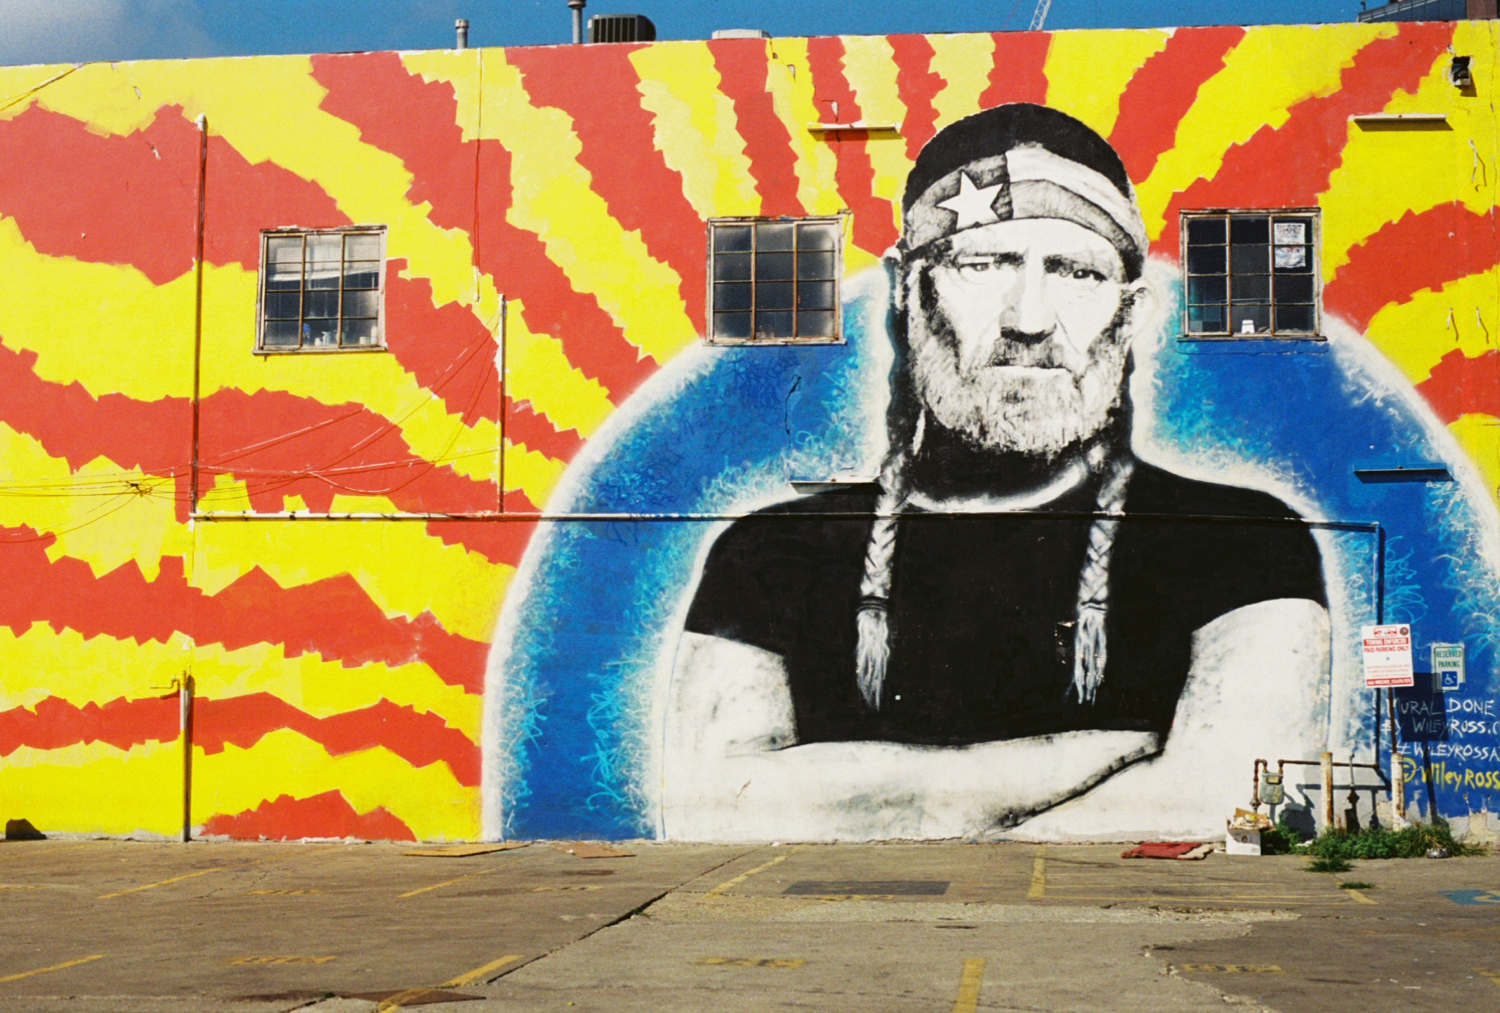 Willie Downtown @ East 7th and Neches, Artist: Wiley Ross